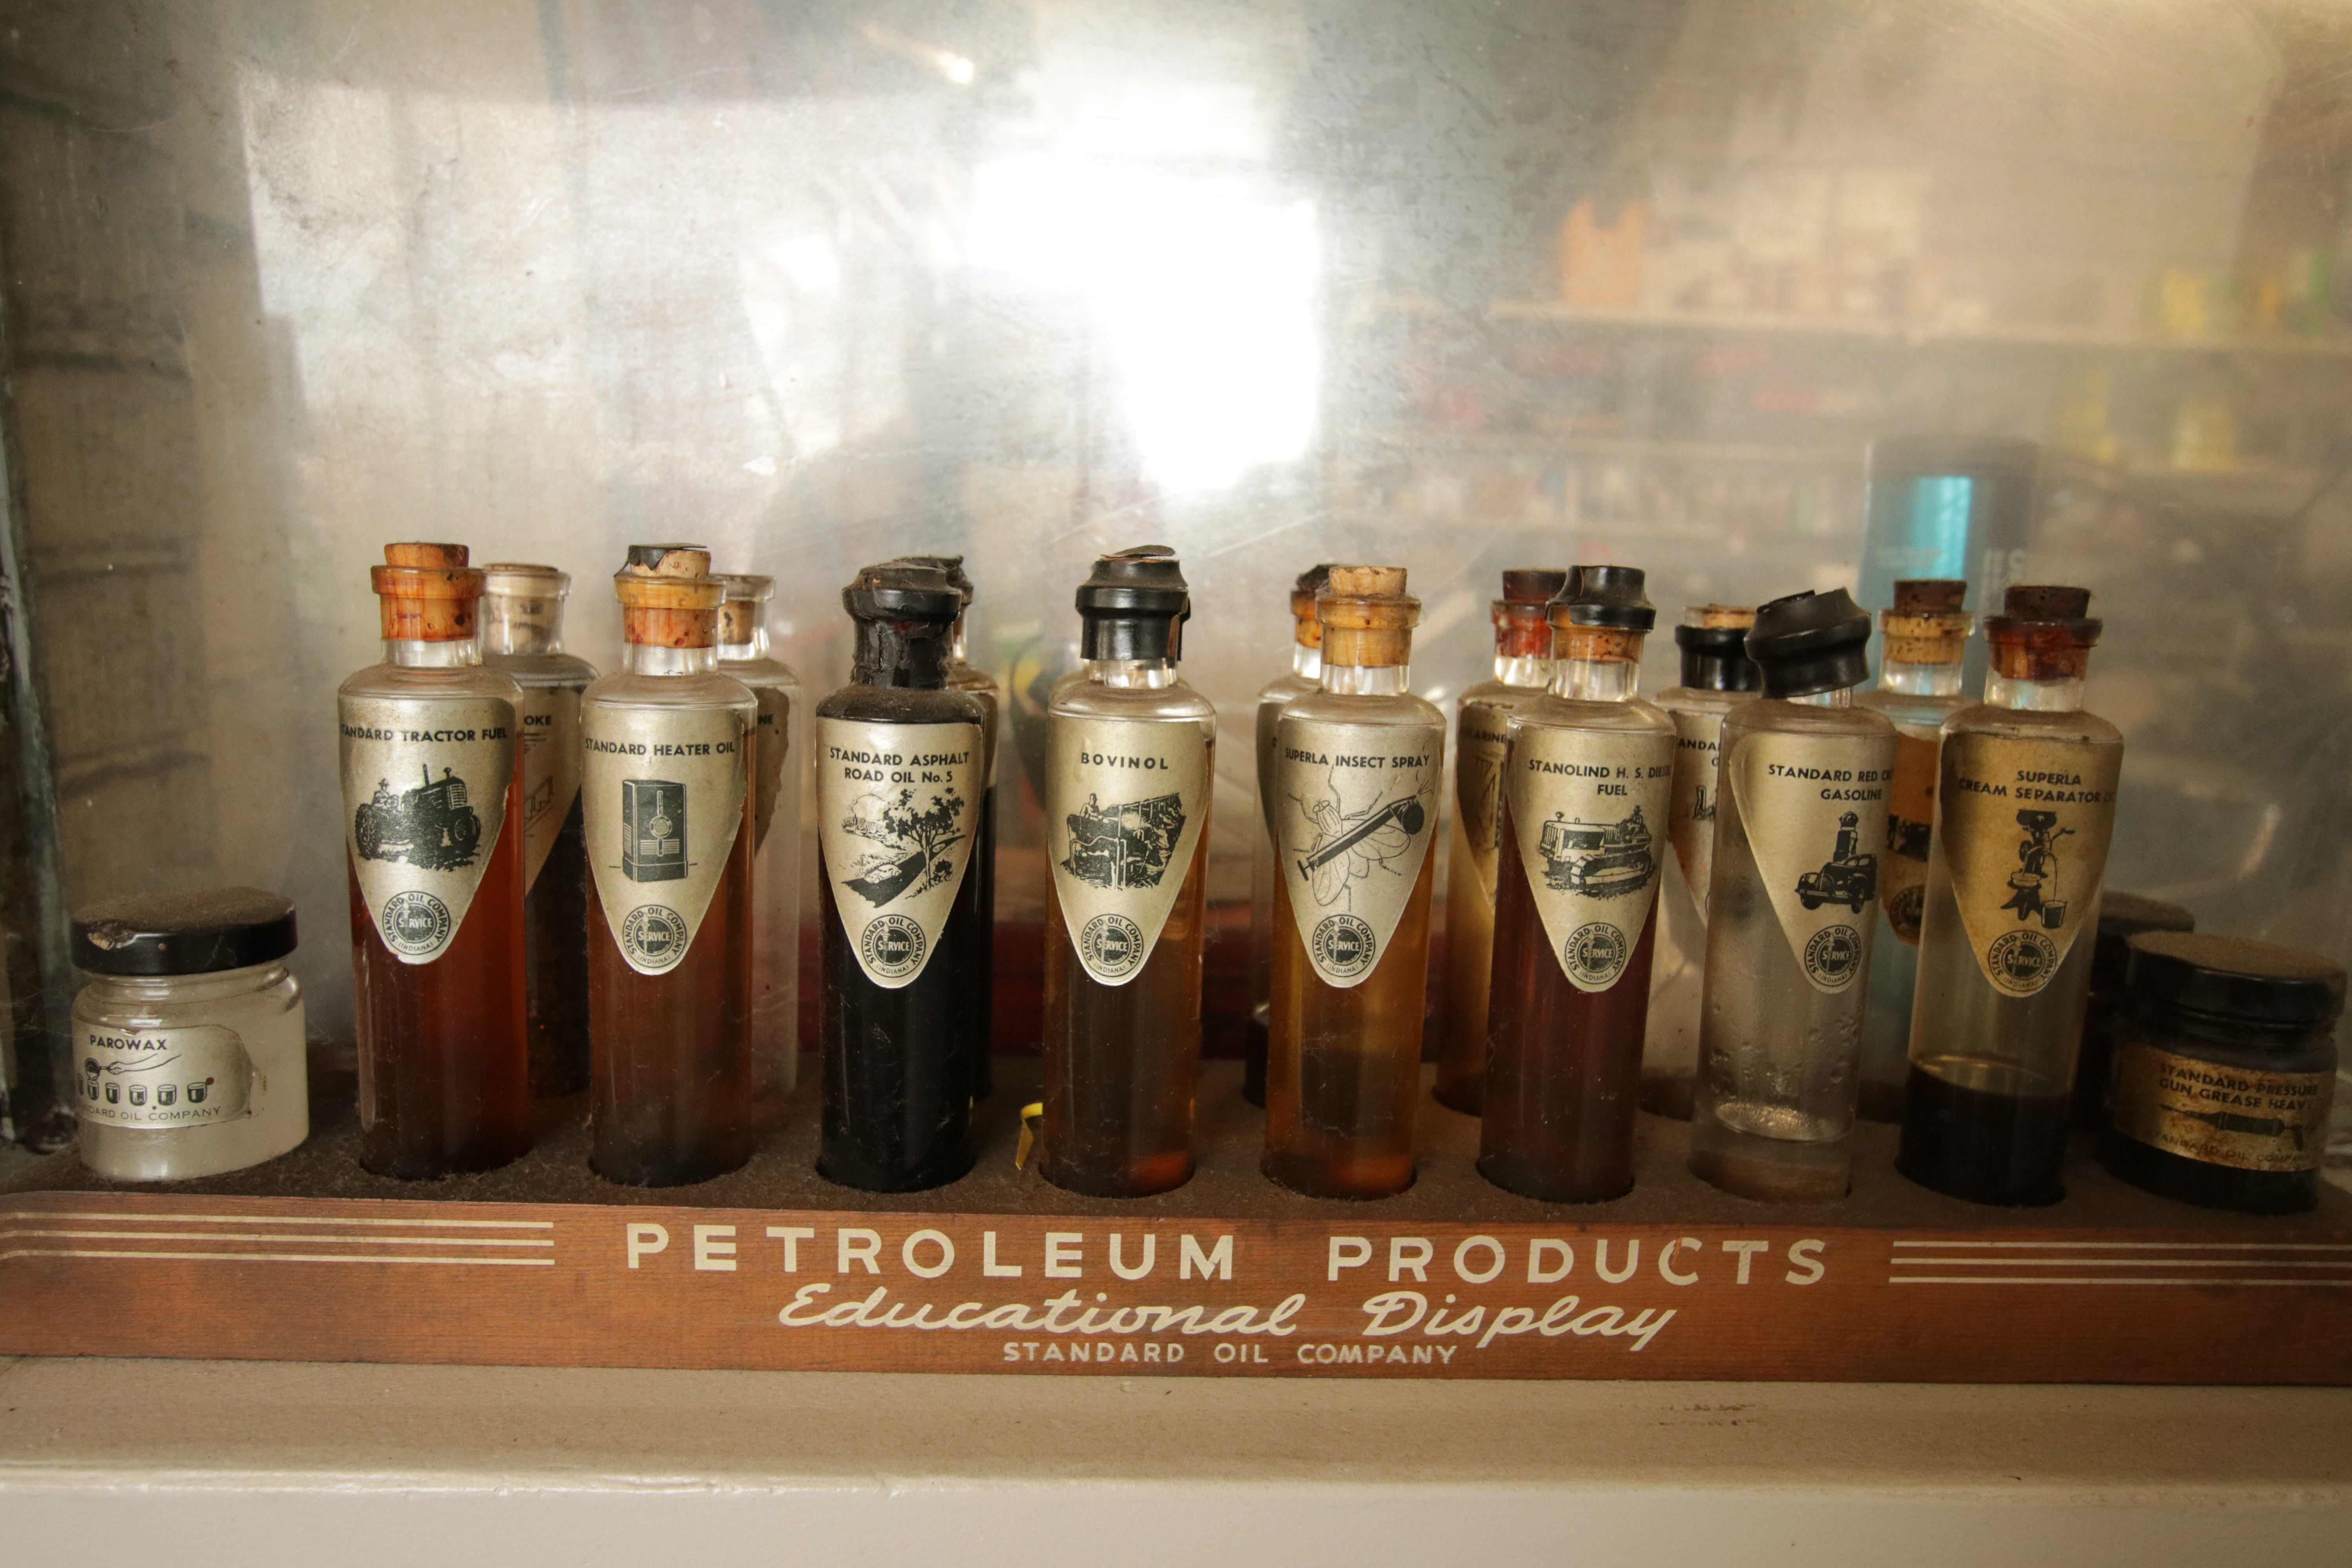 The Standard Oil Company Educational Display of Petroleum Products in the office likely is from the '40s.